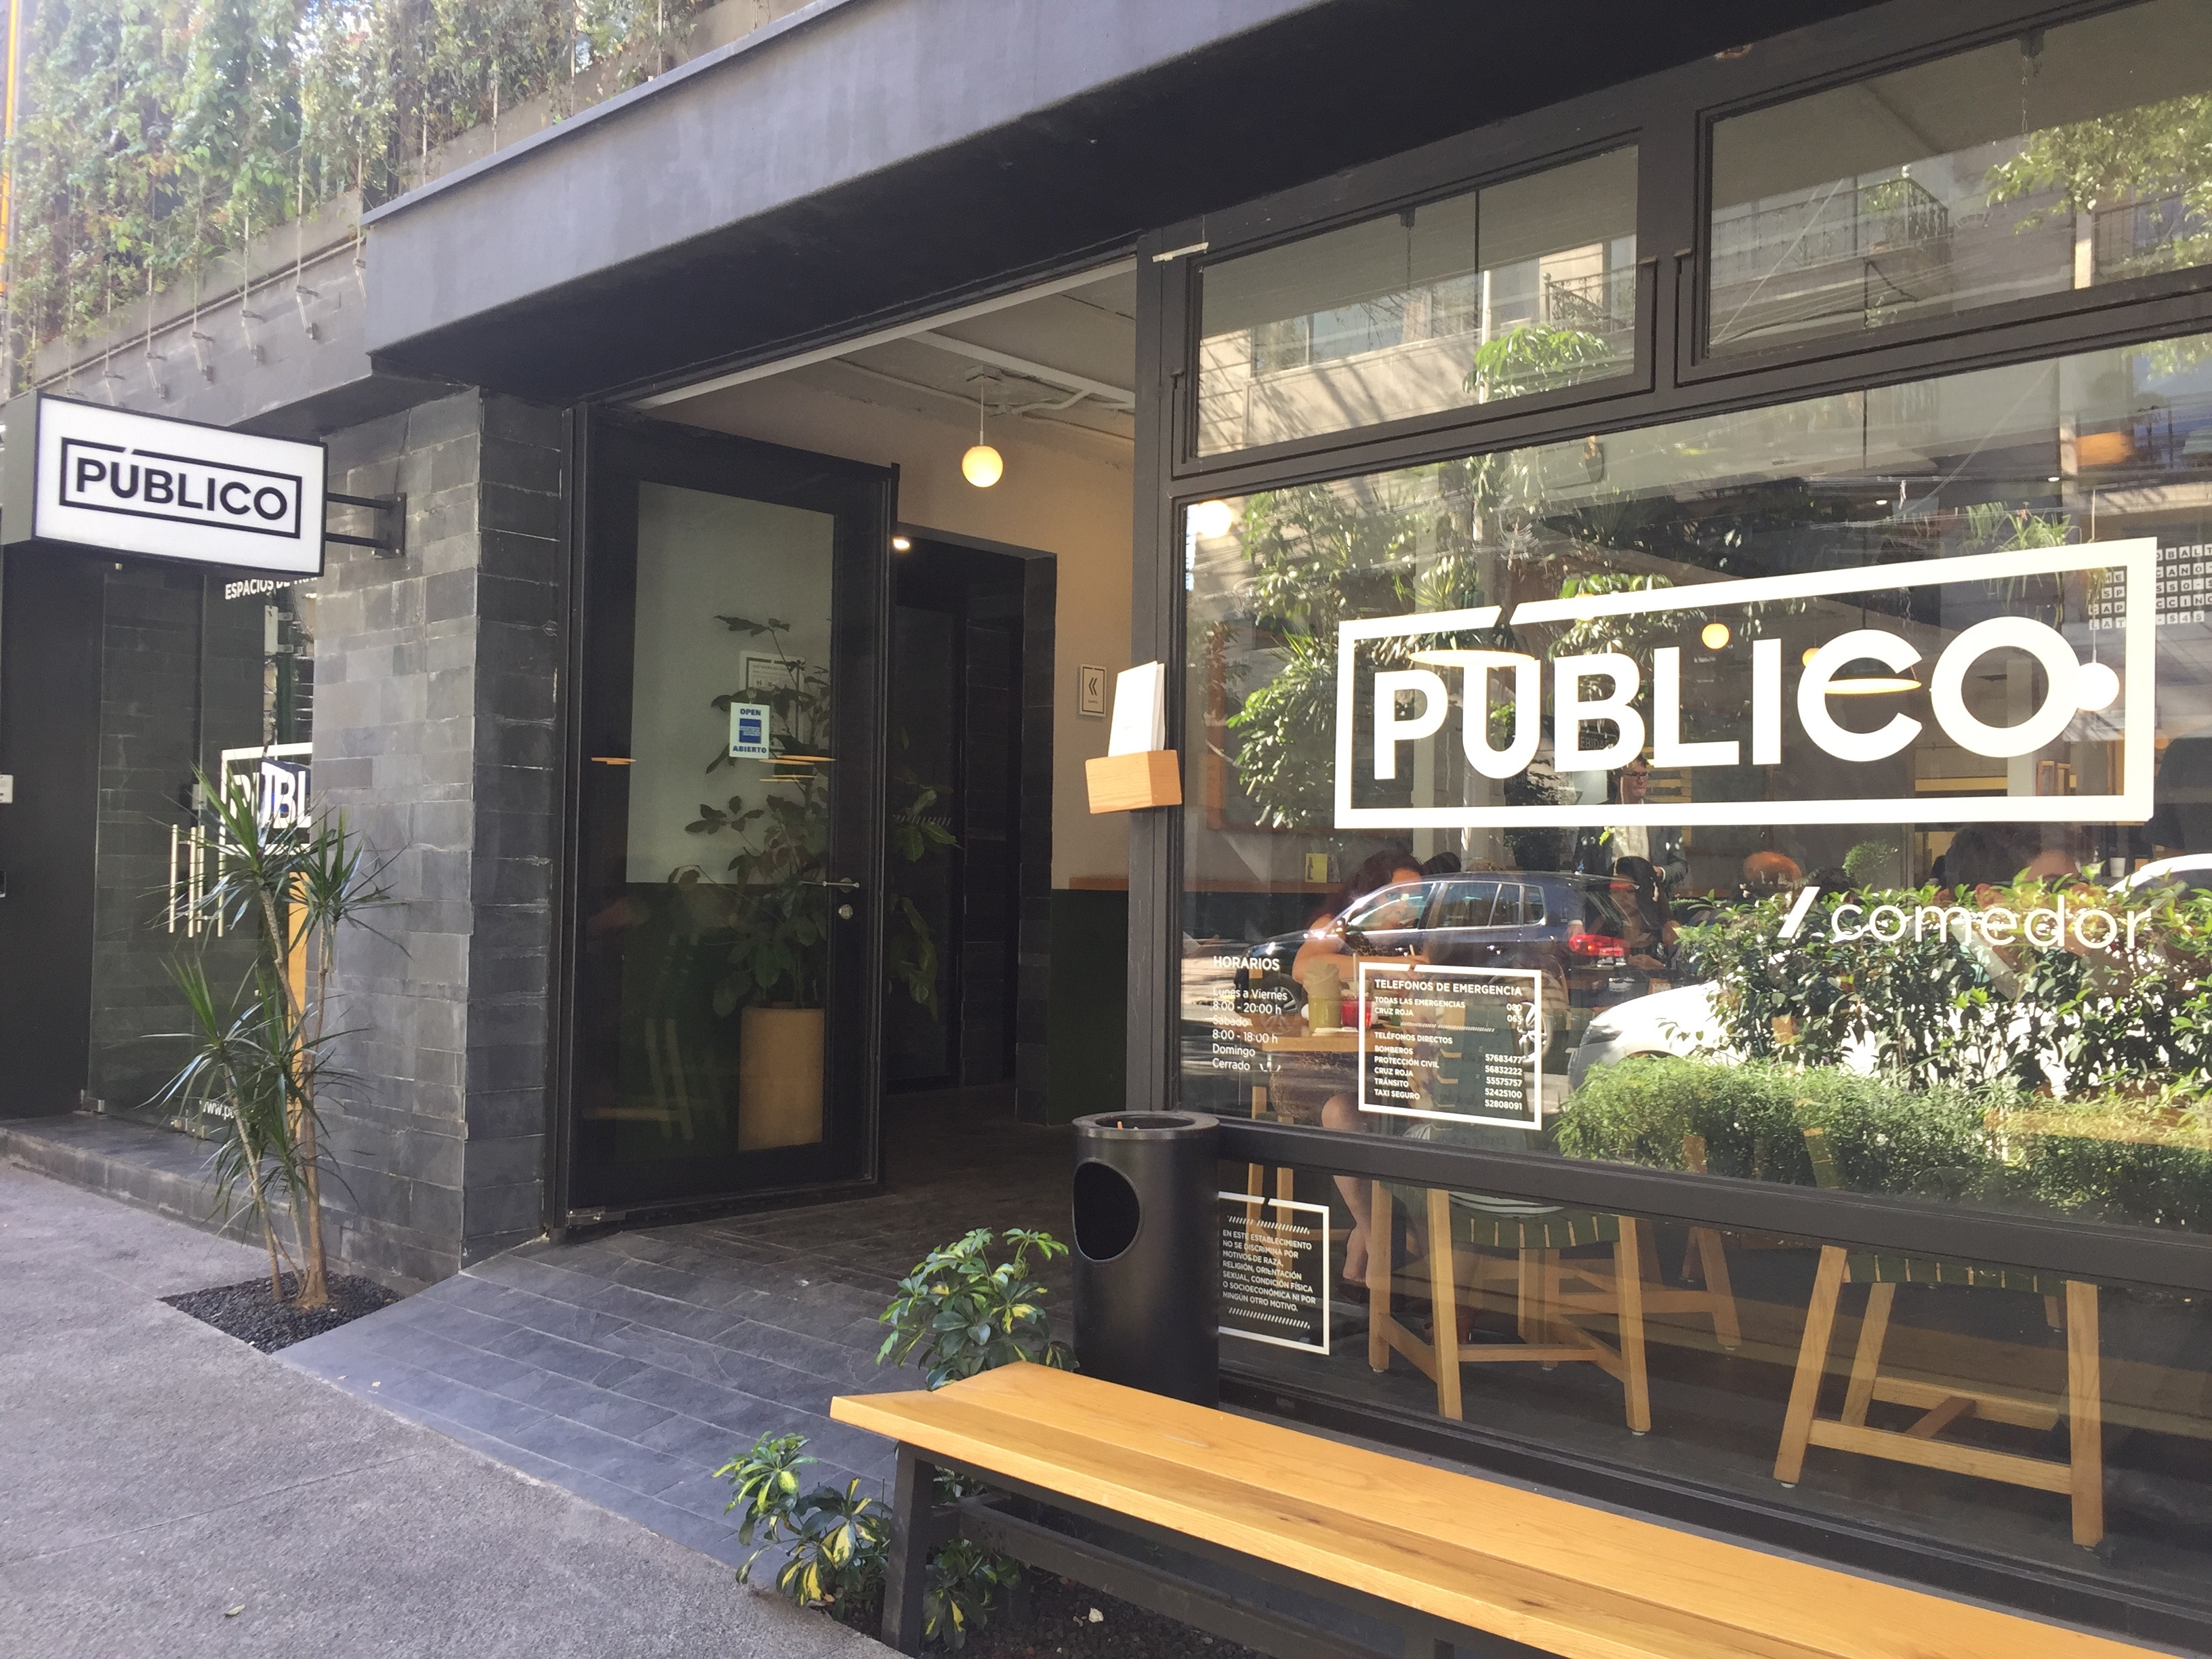 Best Restaurants in Mexico City - Listed by Neighborhood | Publico in Polanco and Condesa